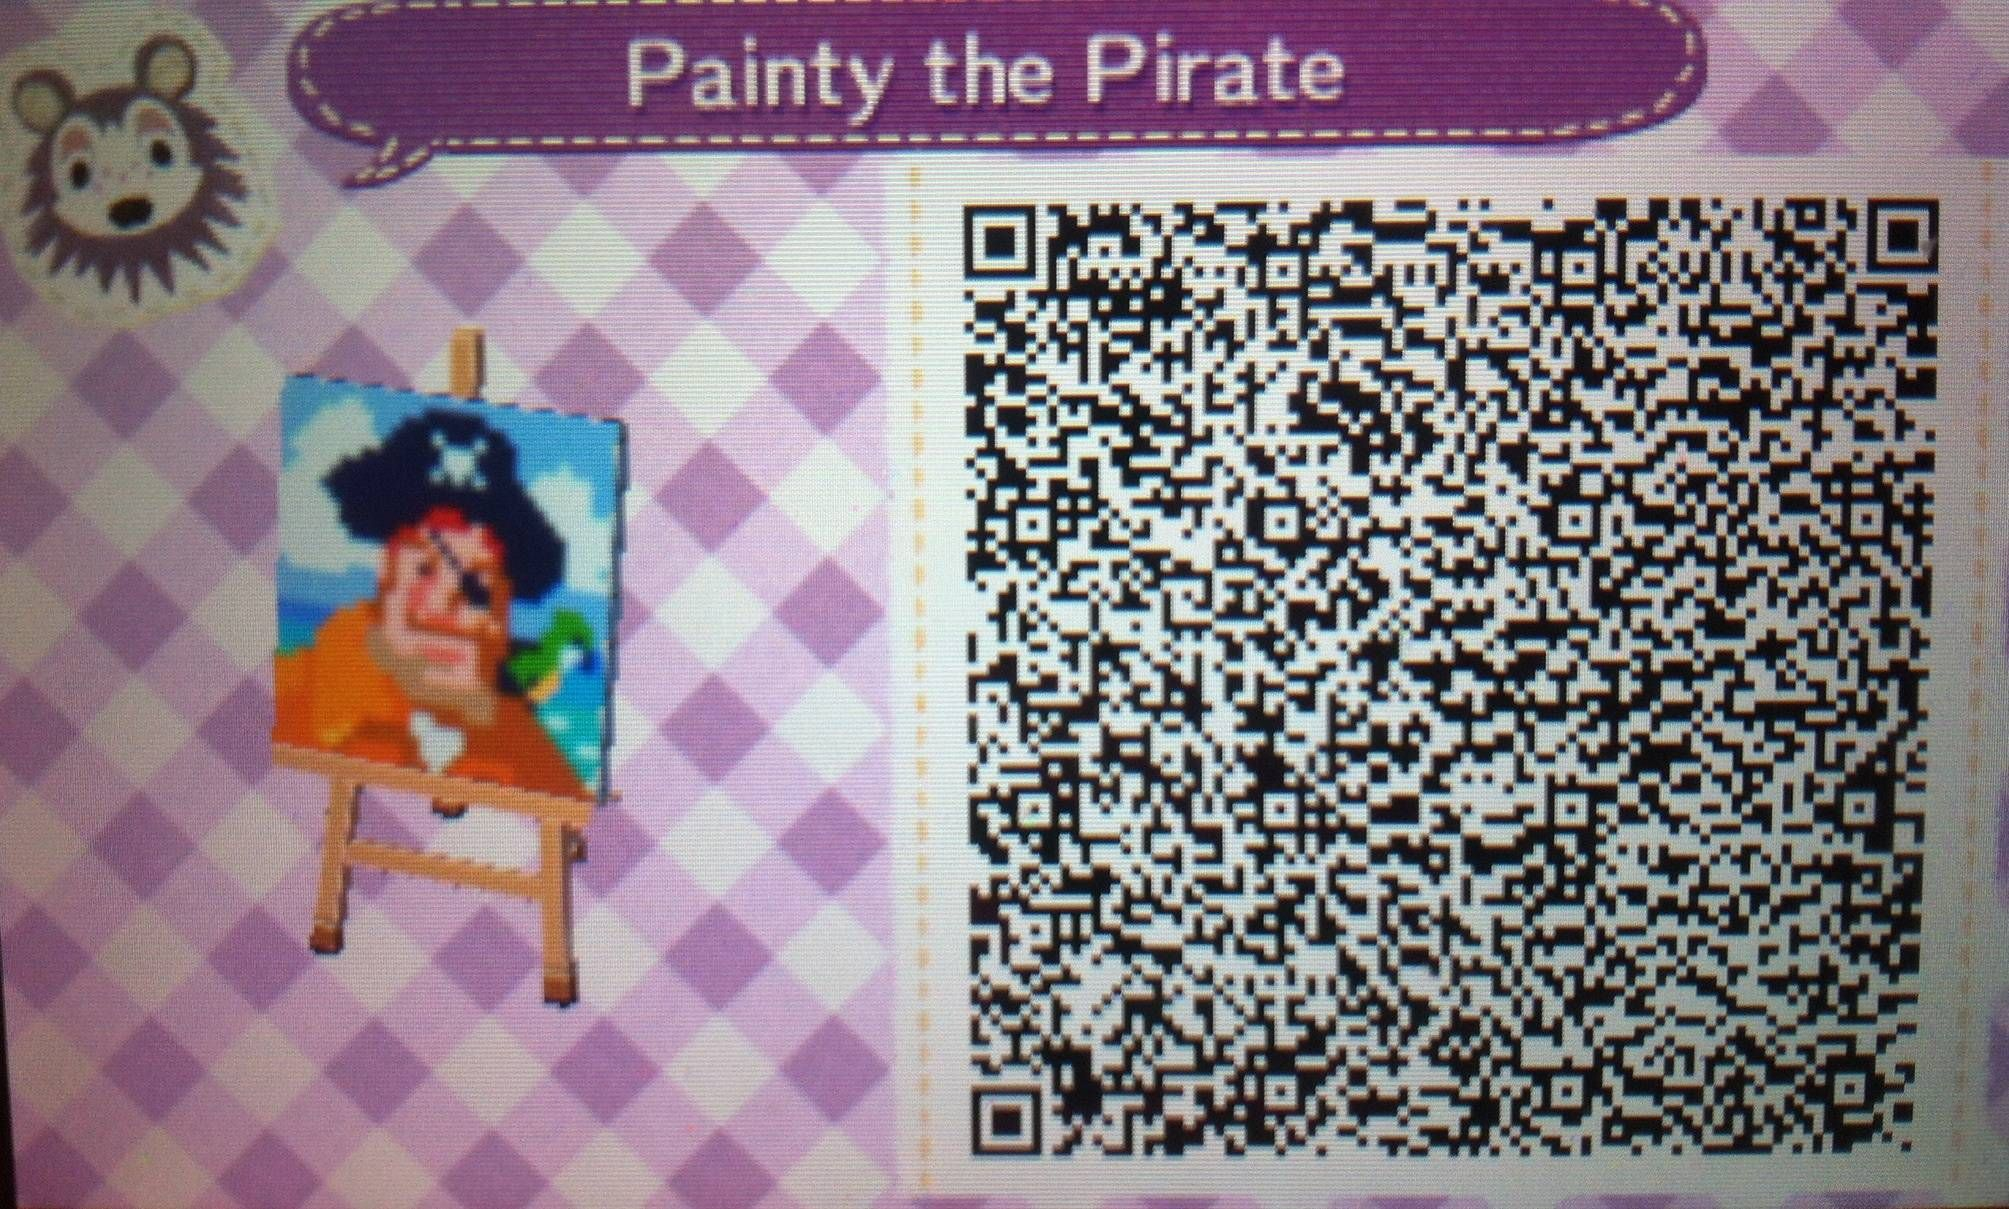 Spongebob Pirate Picture Animalcrossing Animal Crossing Qr